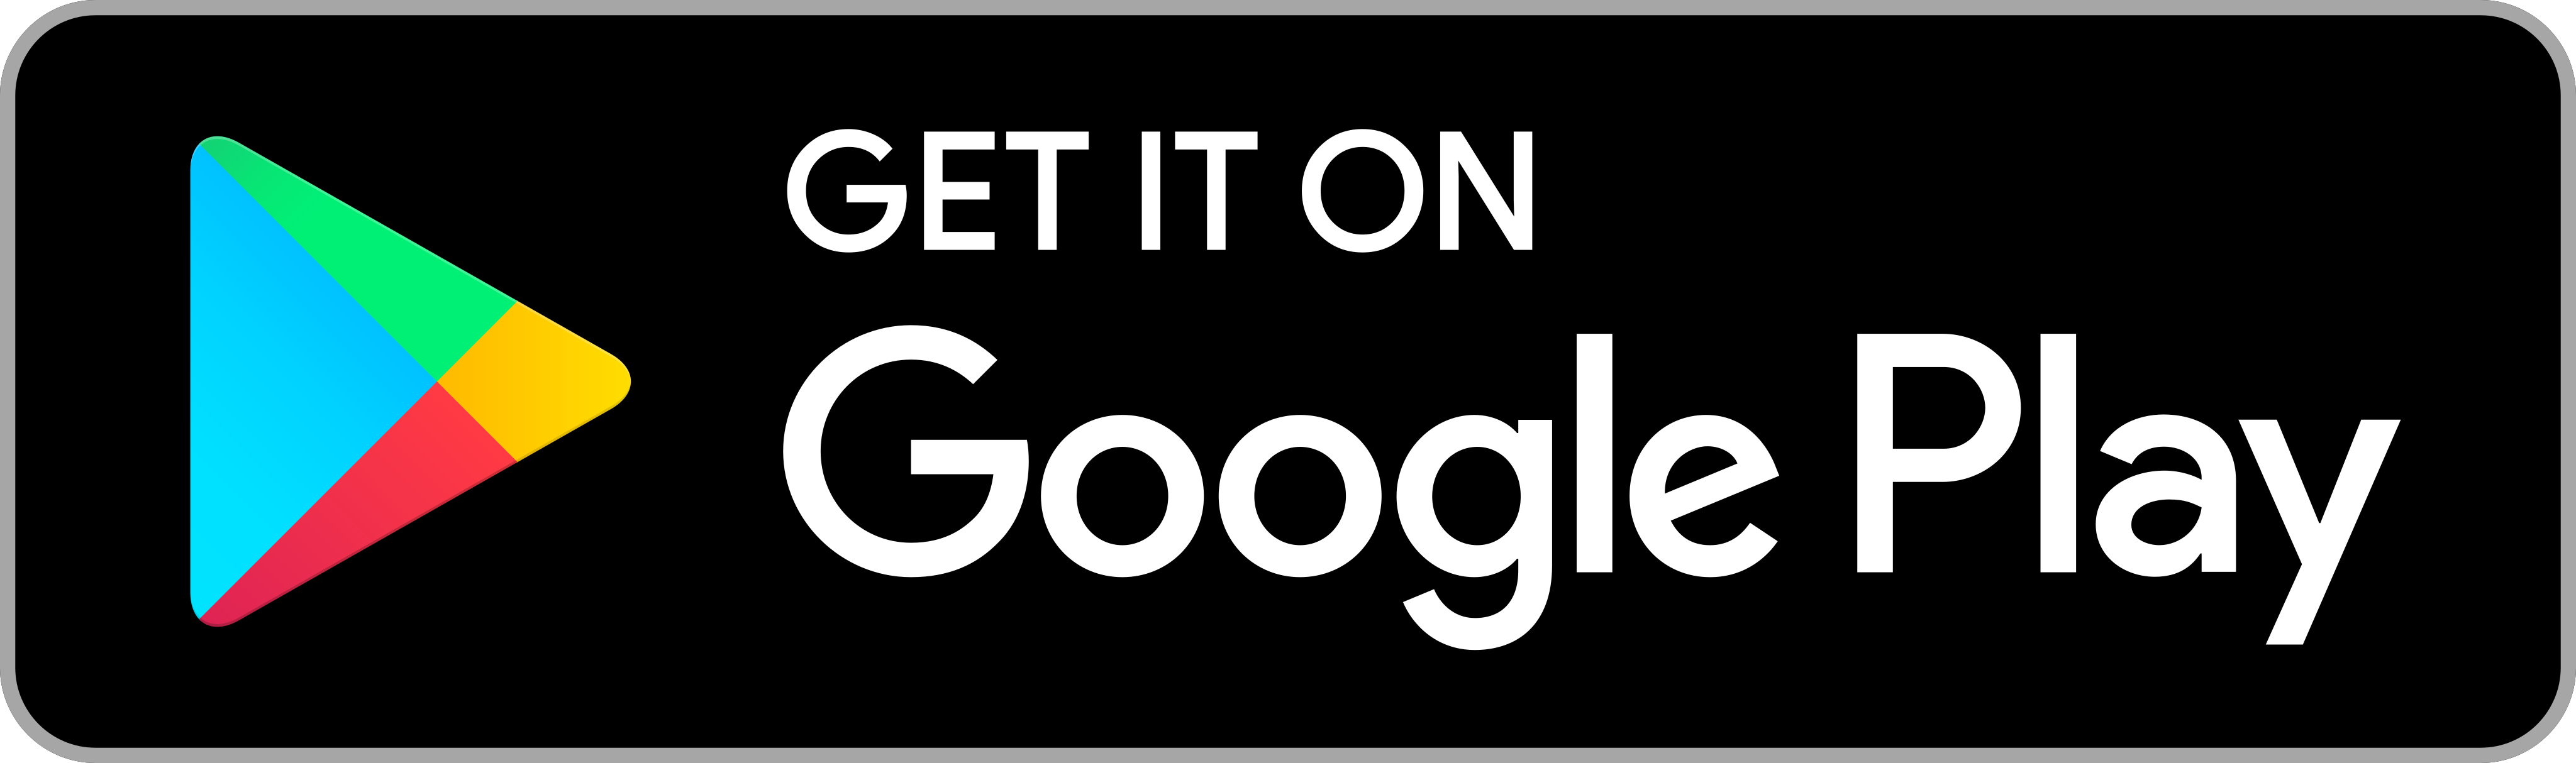 get-it-on-google-play-badge